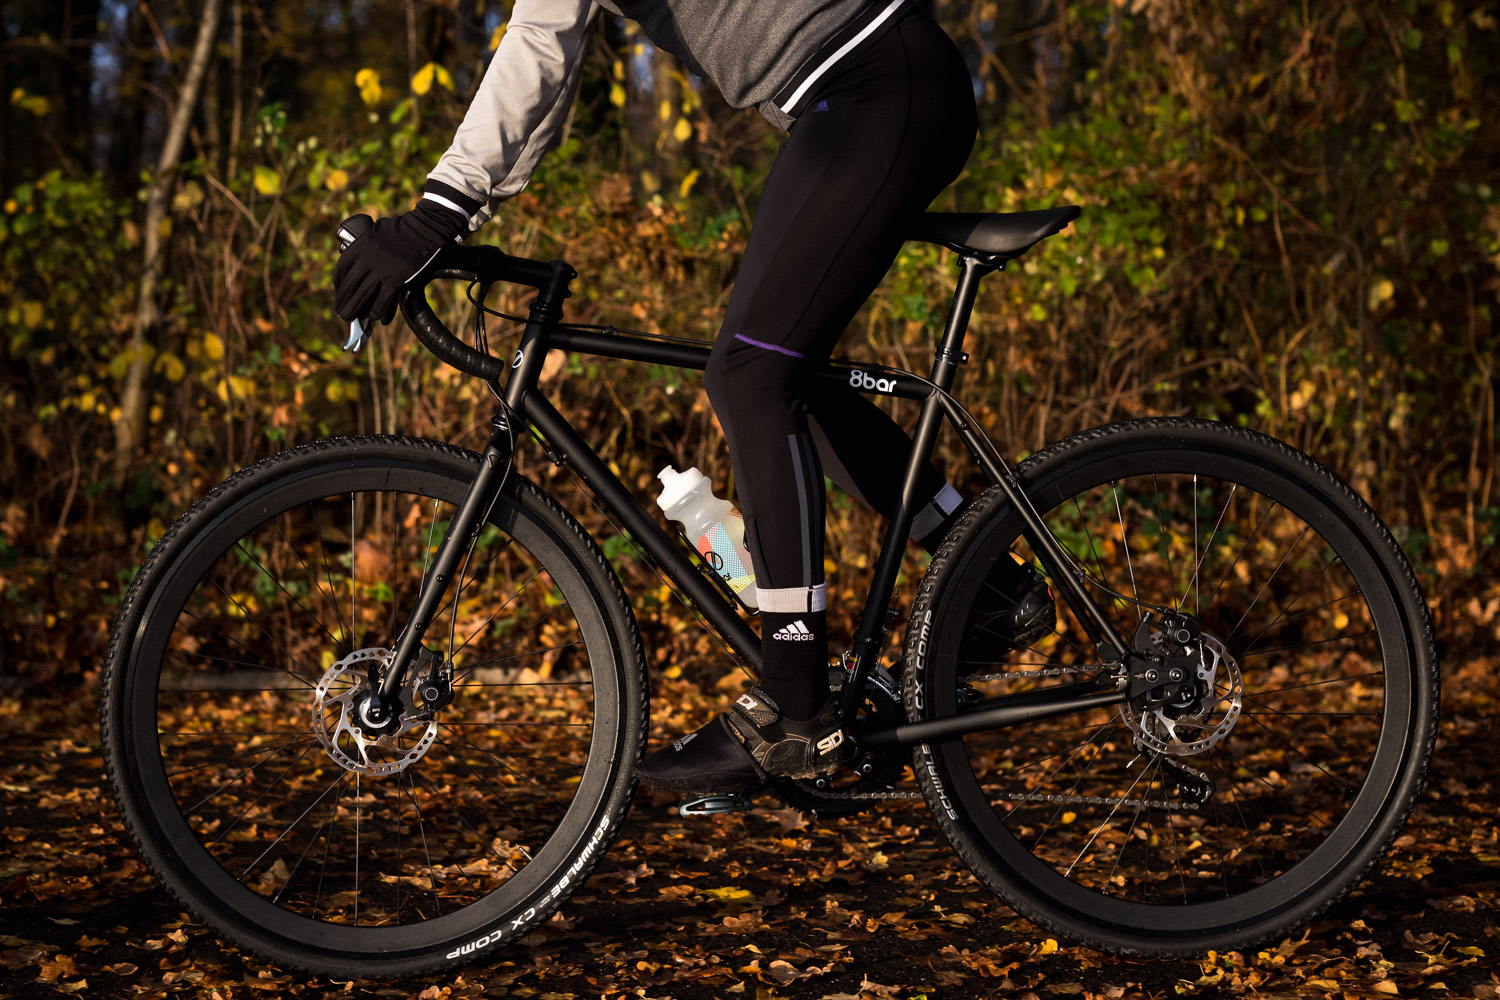 A woman riding a gravel bike in the woods.She is riding a black 8bar Mitte Steel.